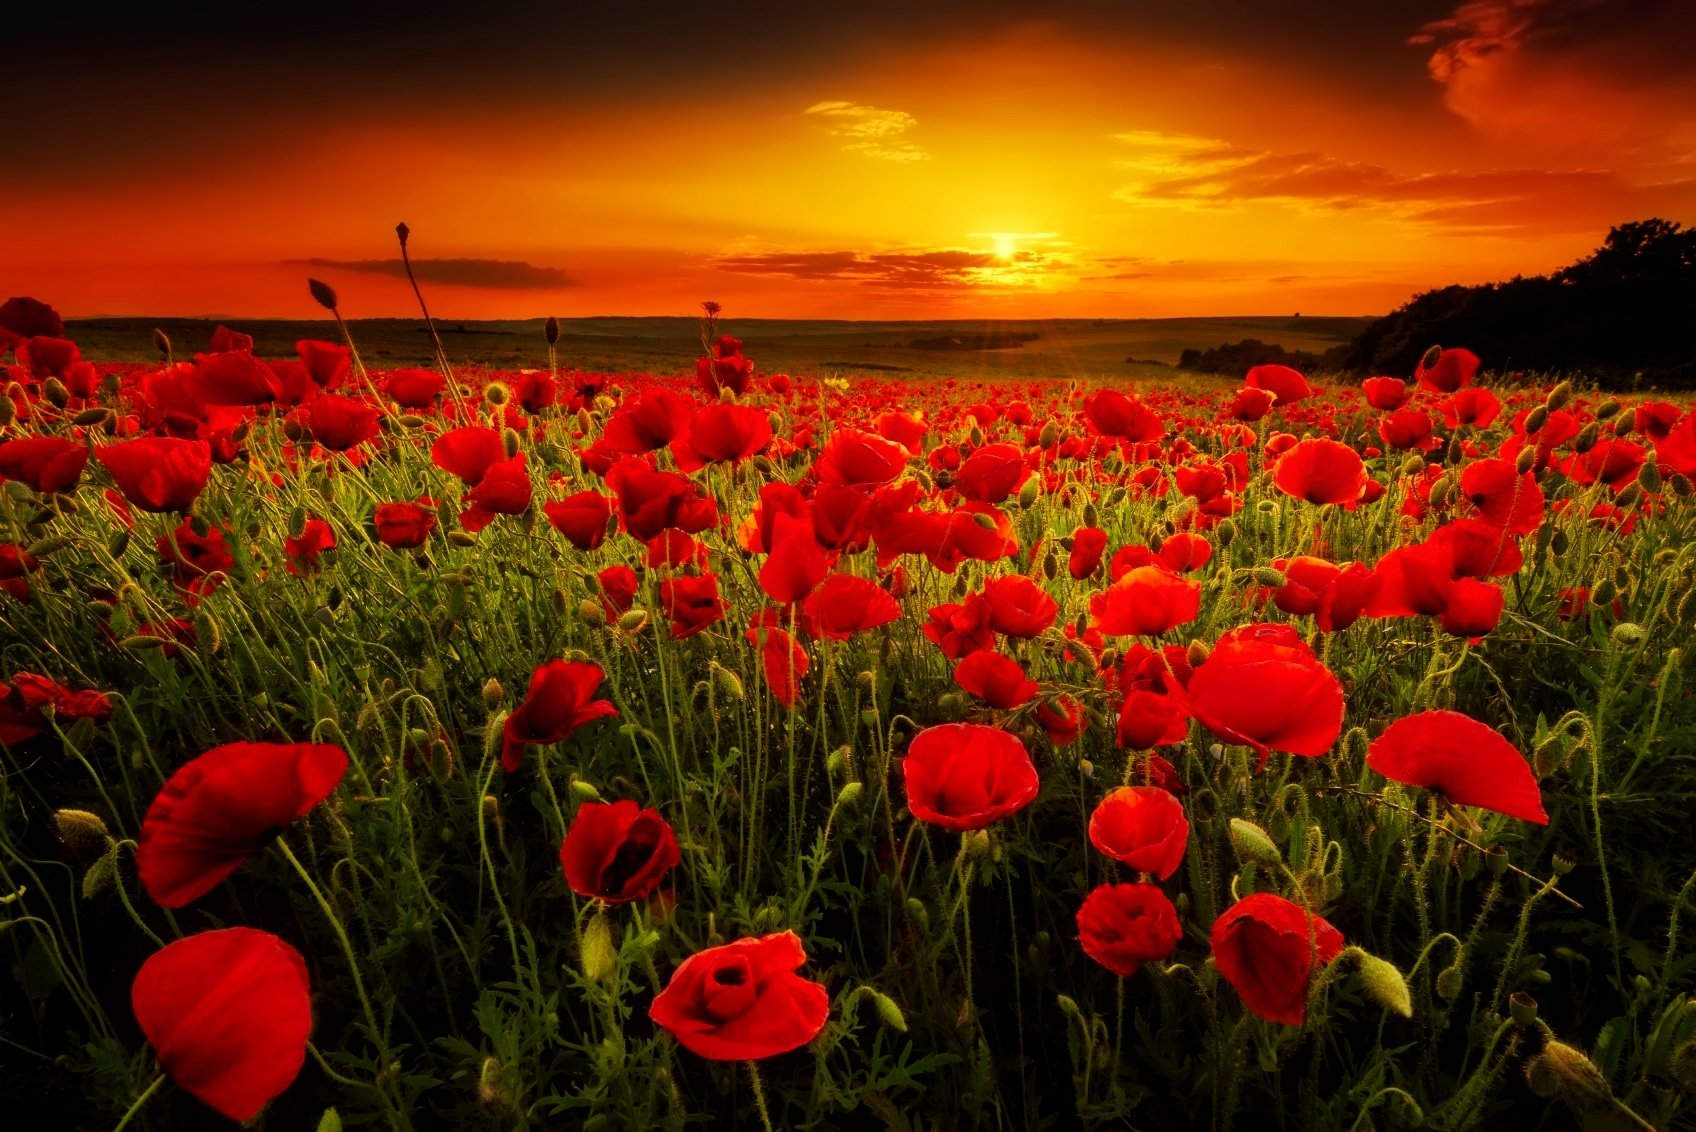 poppy field at sunset fond d 39 cran and arri re plan 1696x1132 id 692129 wallpaper abyss. Black Bedroom Furniture Sets. Home Design Ideas